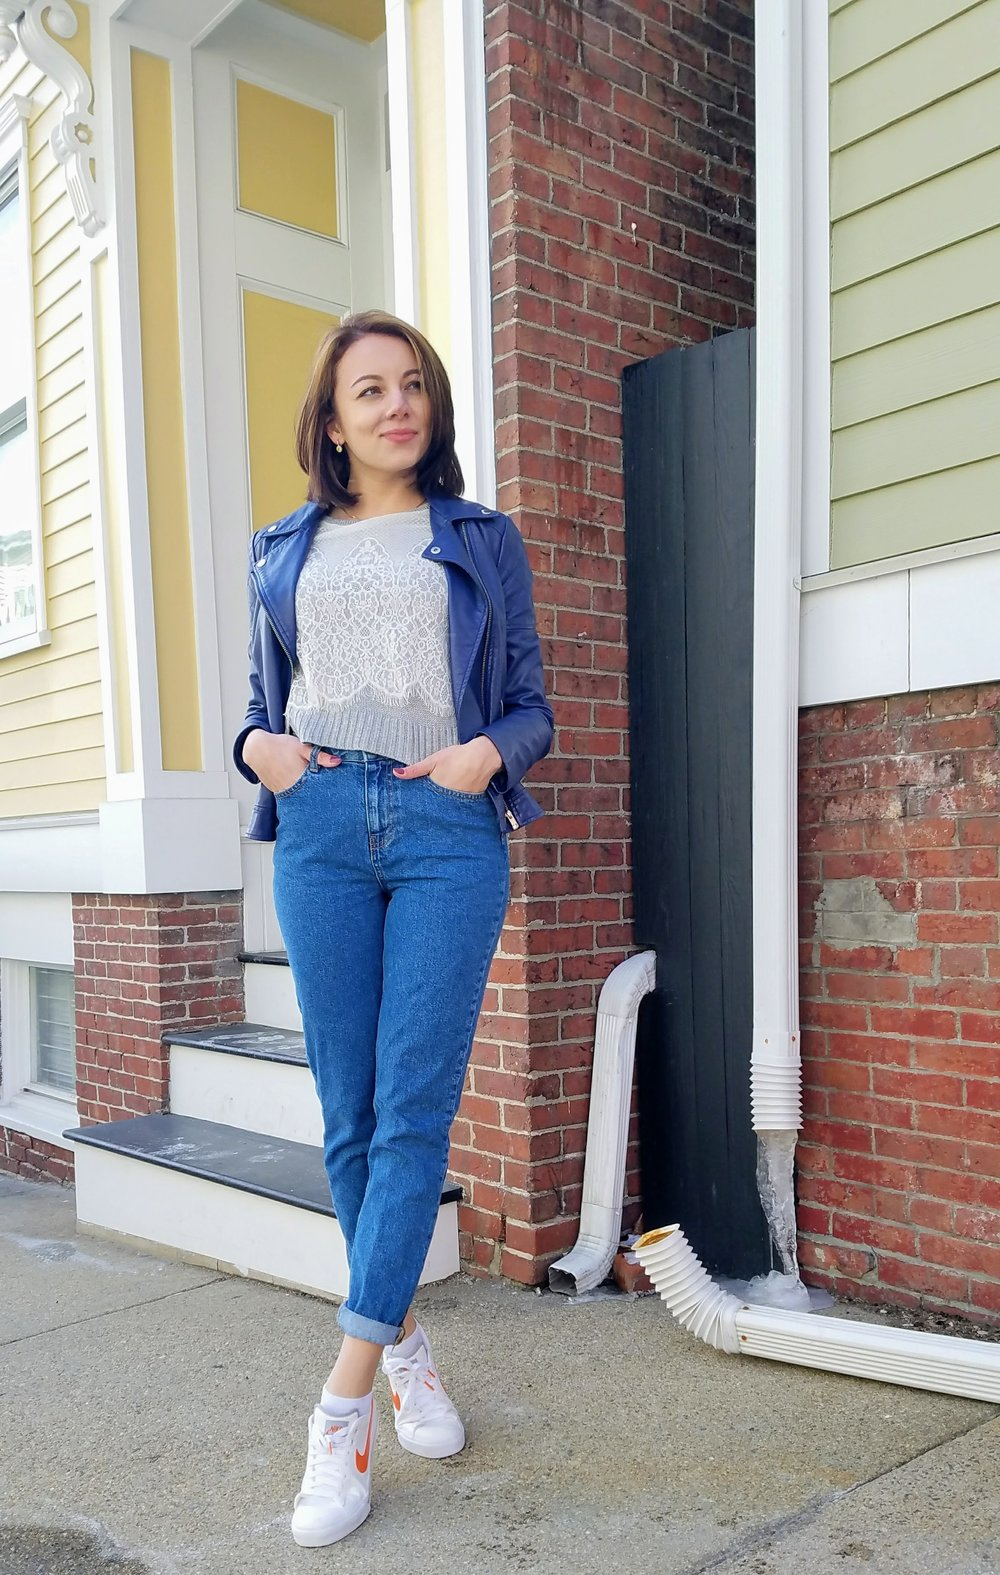 Blue jacket, gray sweater, mom jeans, Nike sneakers outfit on street